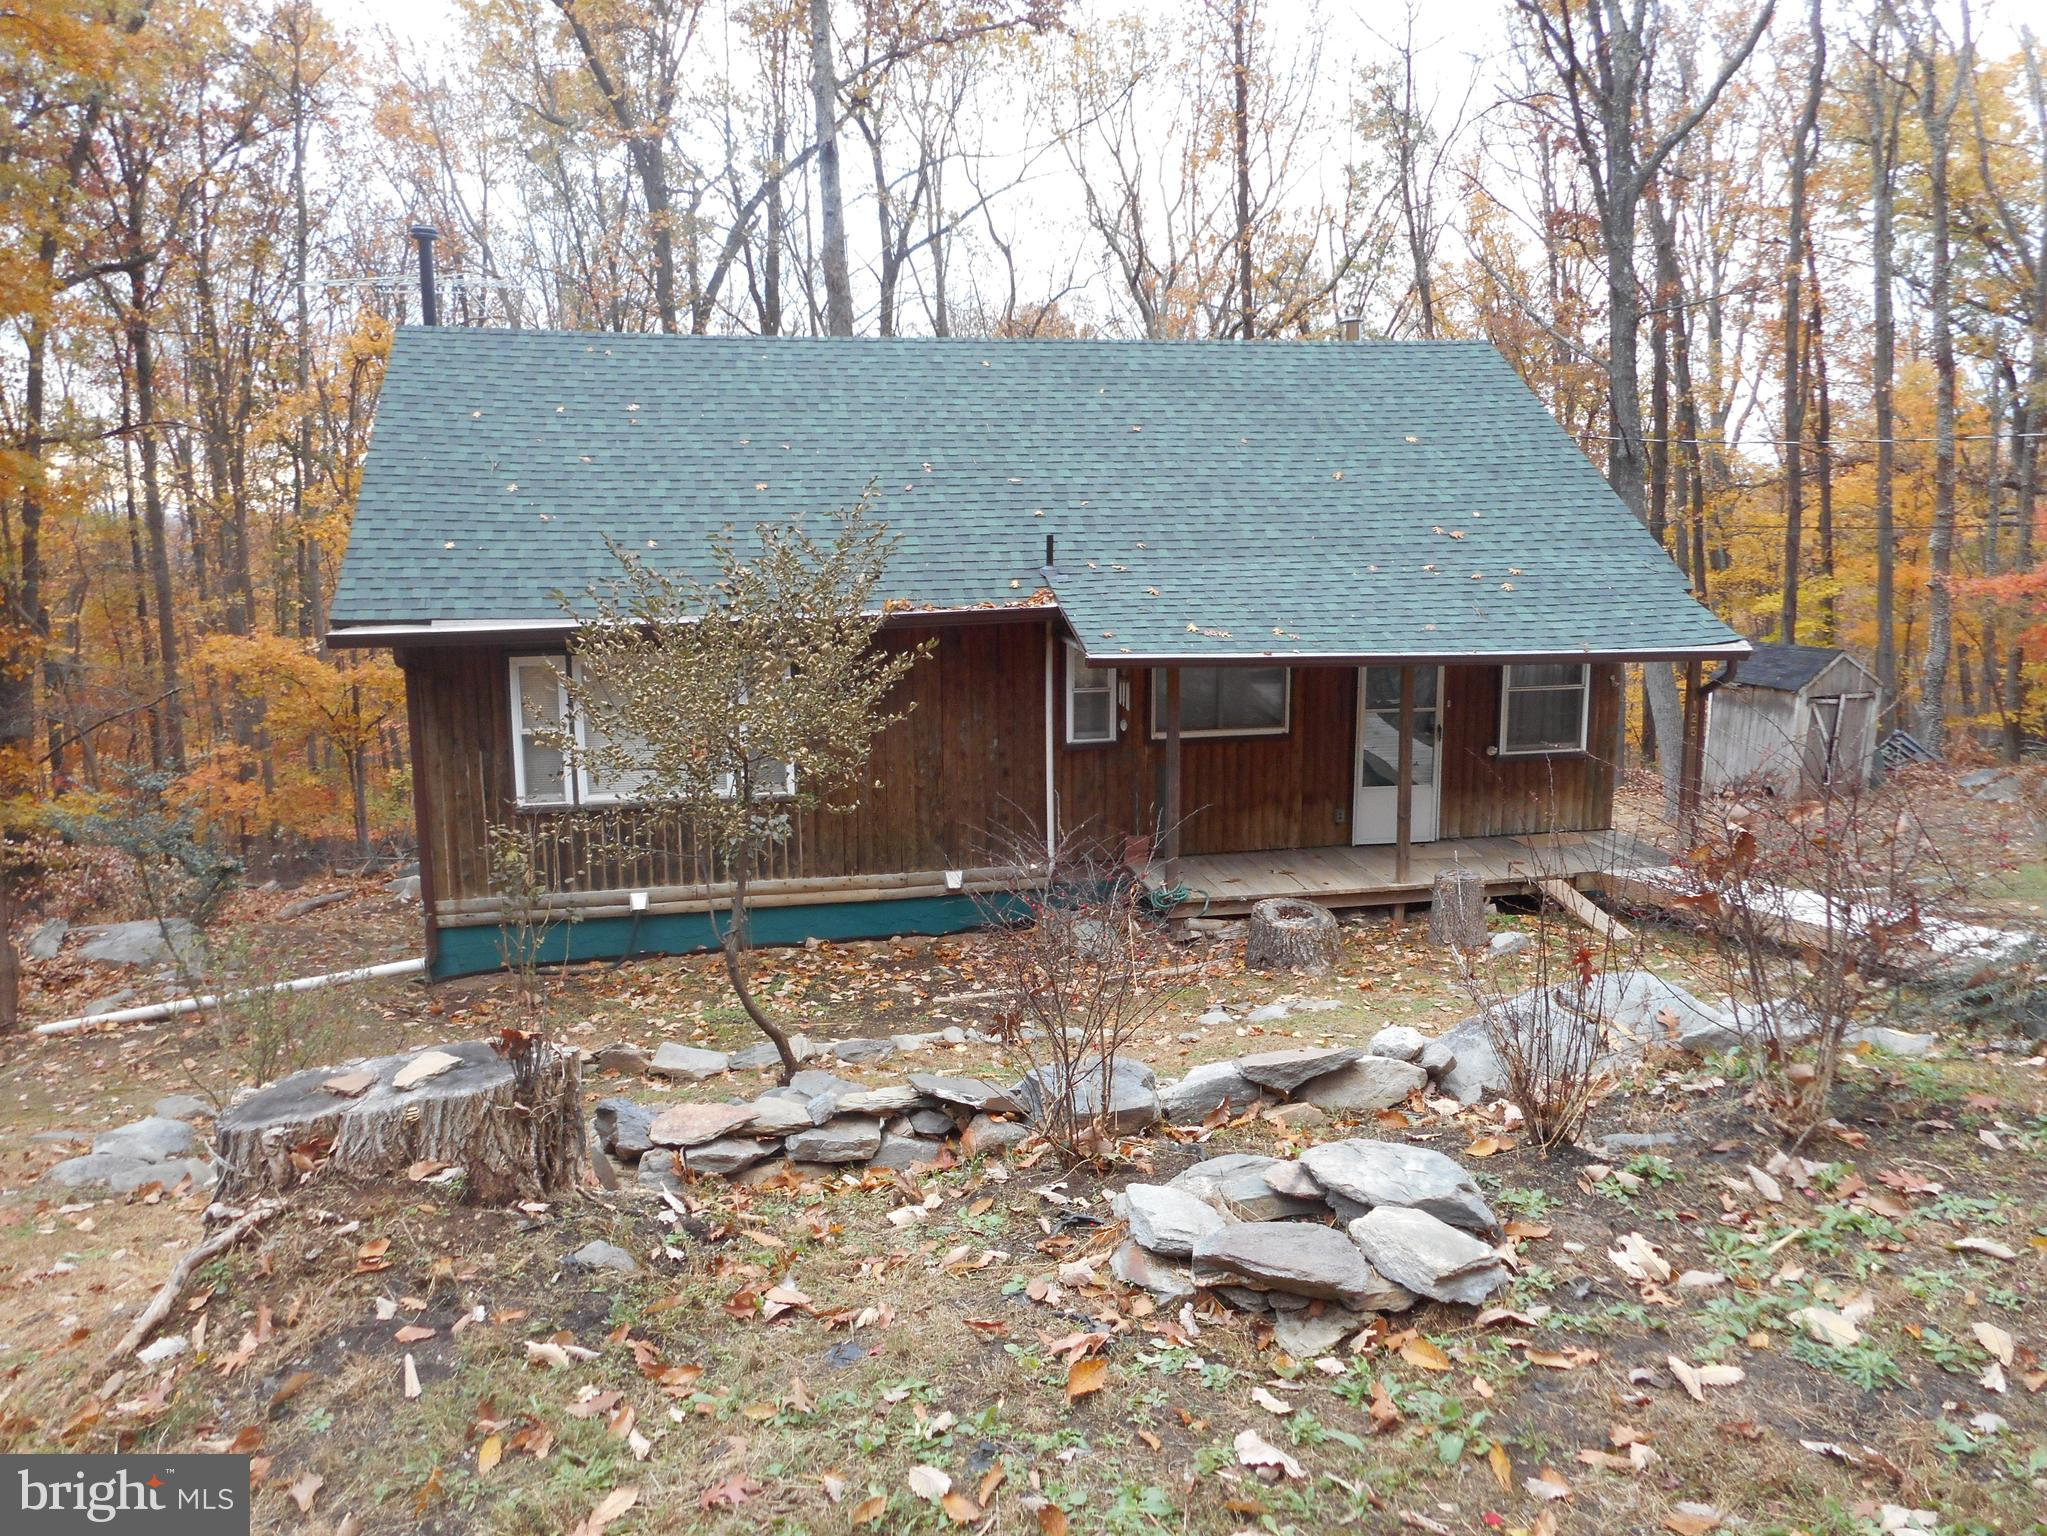 125 FAWN, Harpers Ferry, WV, 25425